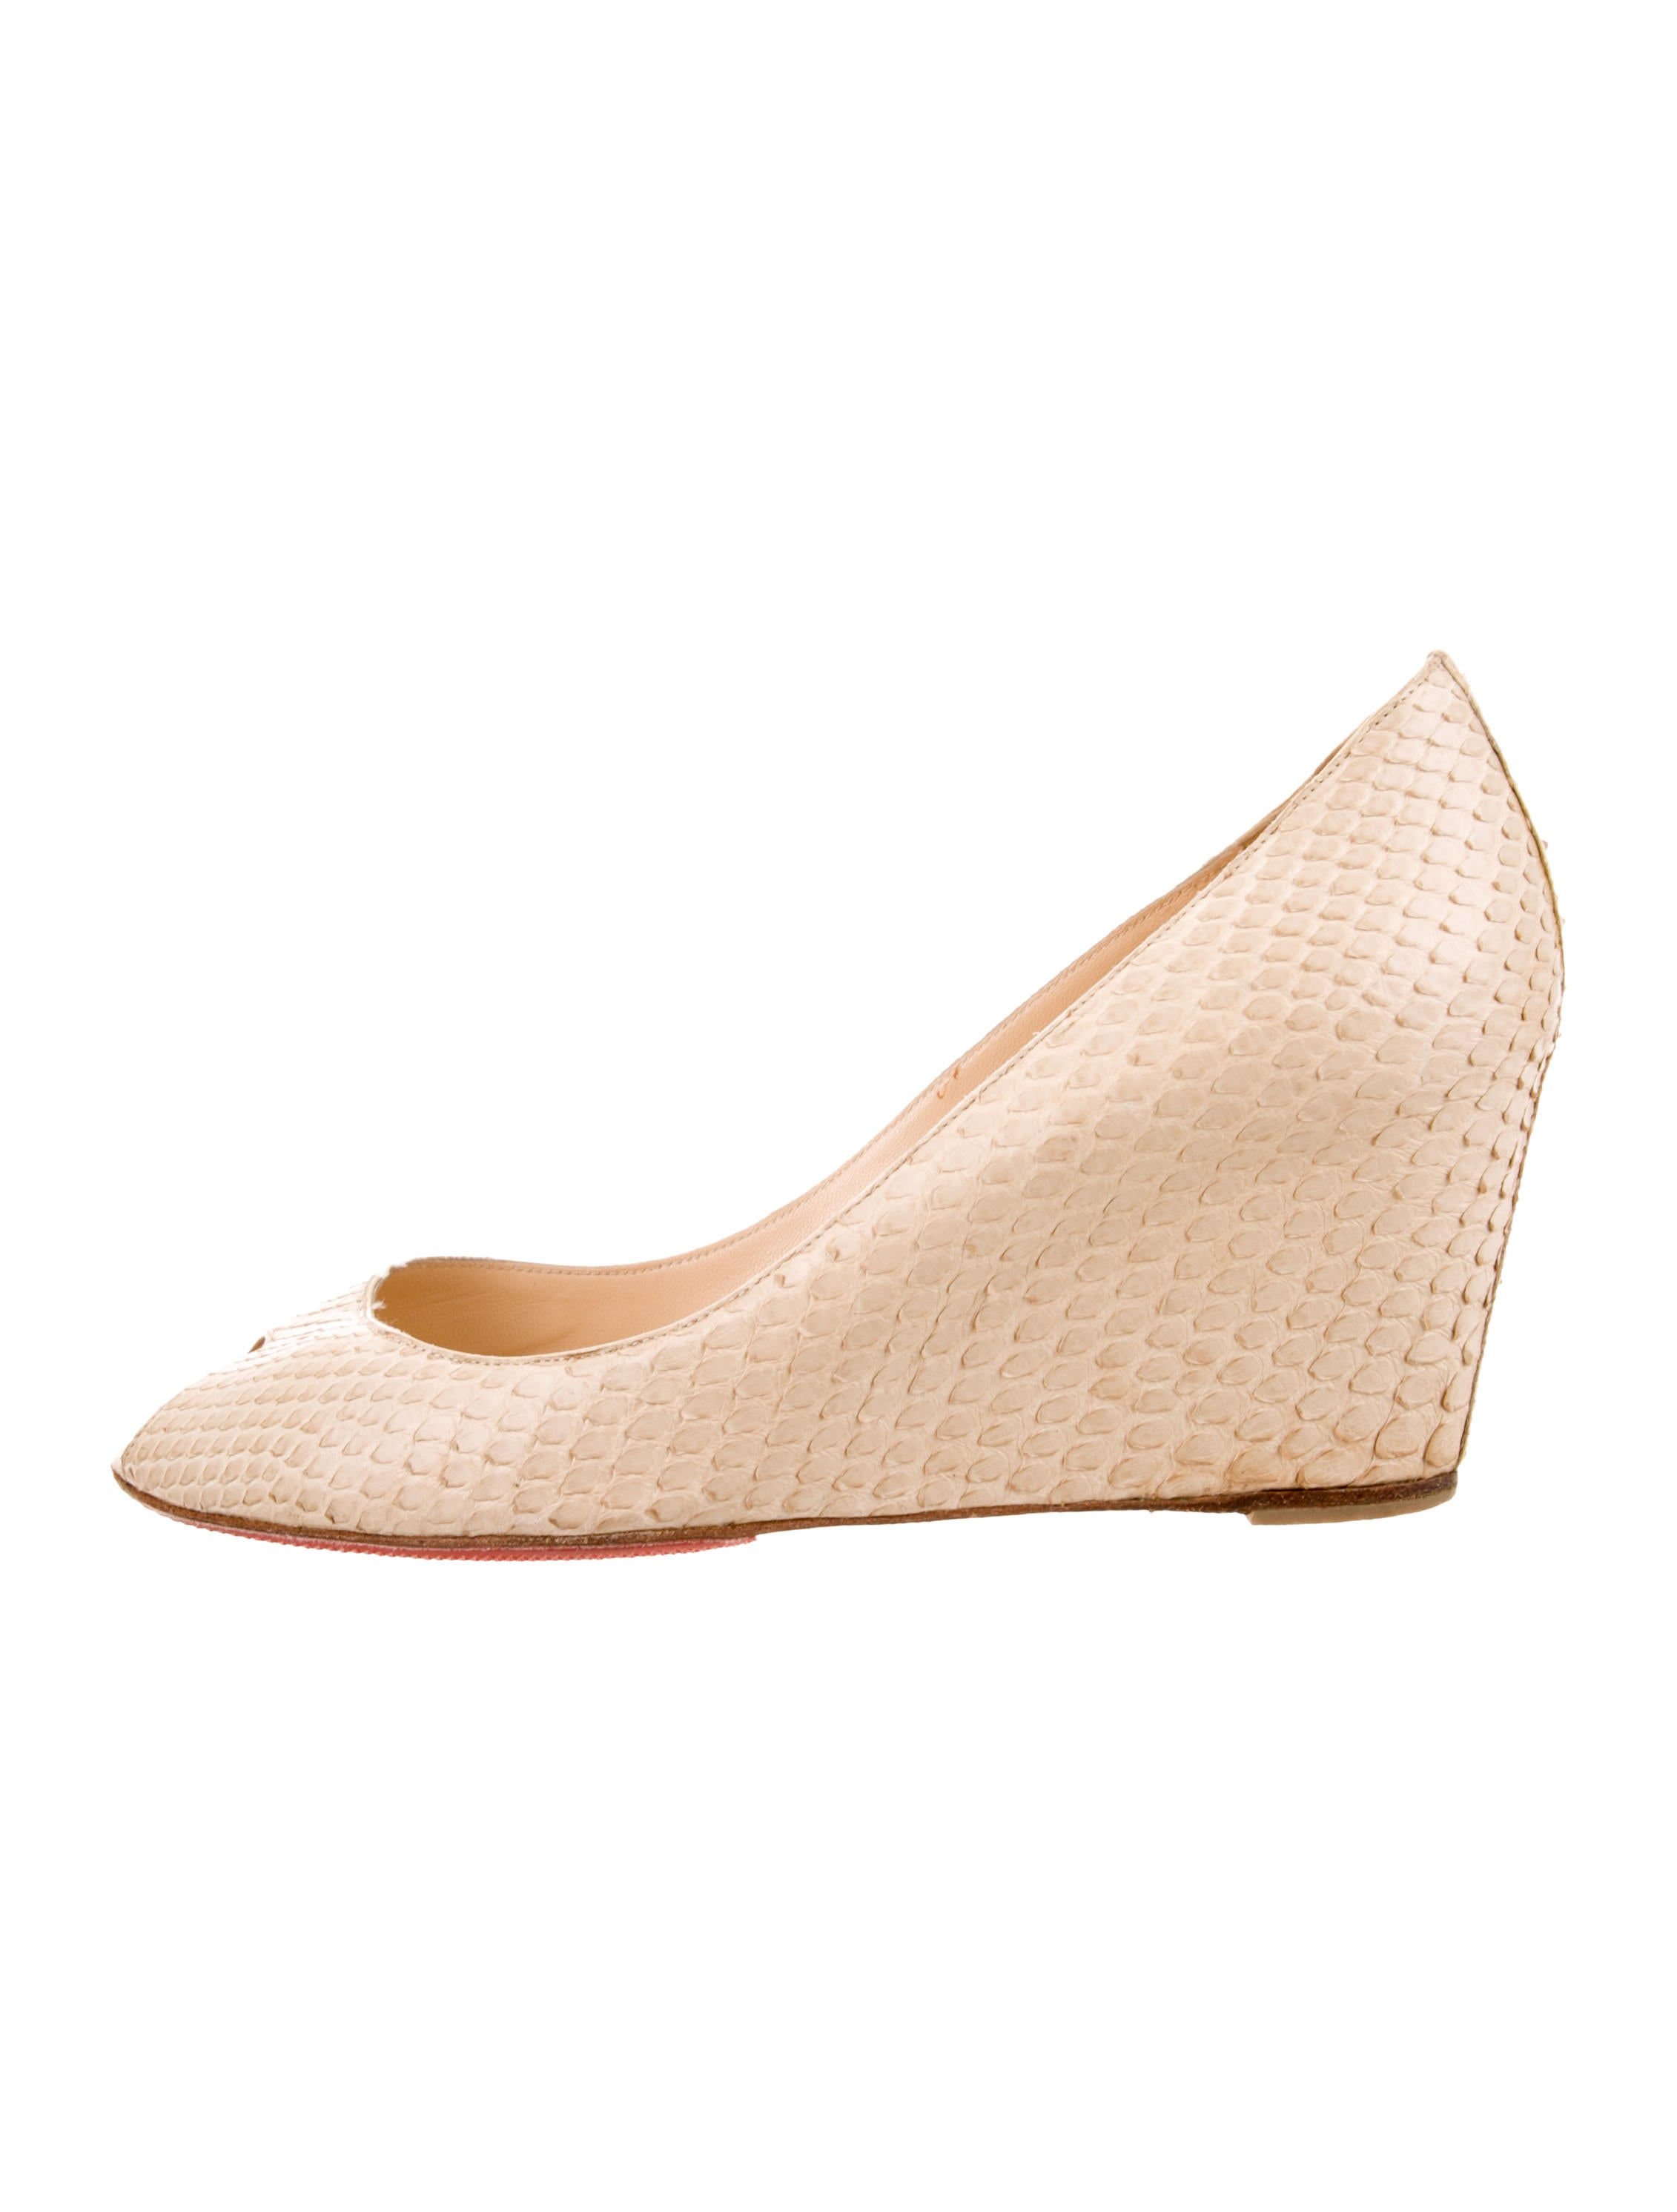 new products 22a86 26016 Christian Louboutin Python Peep-Toe Wedges - Shoes ...